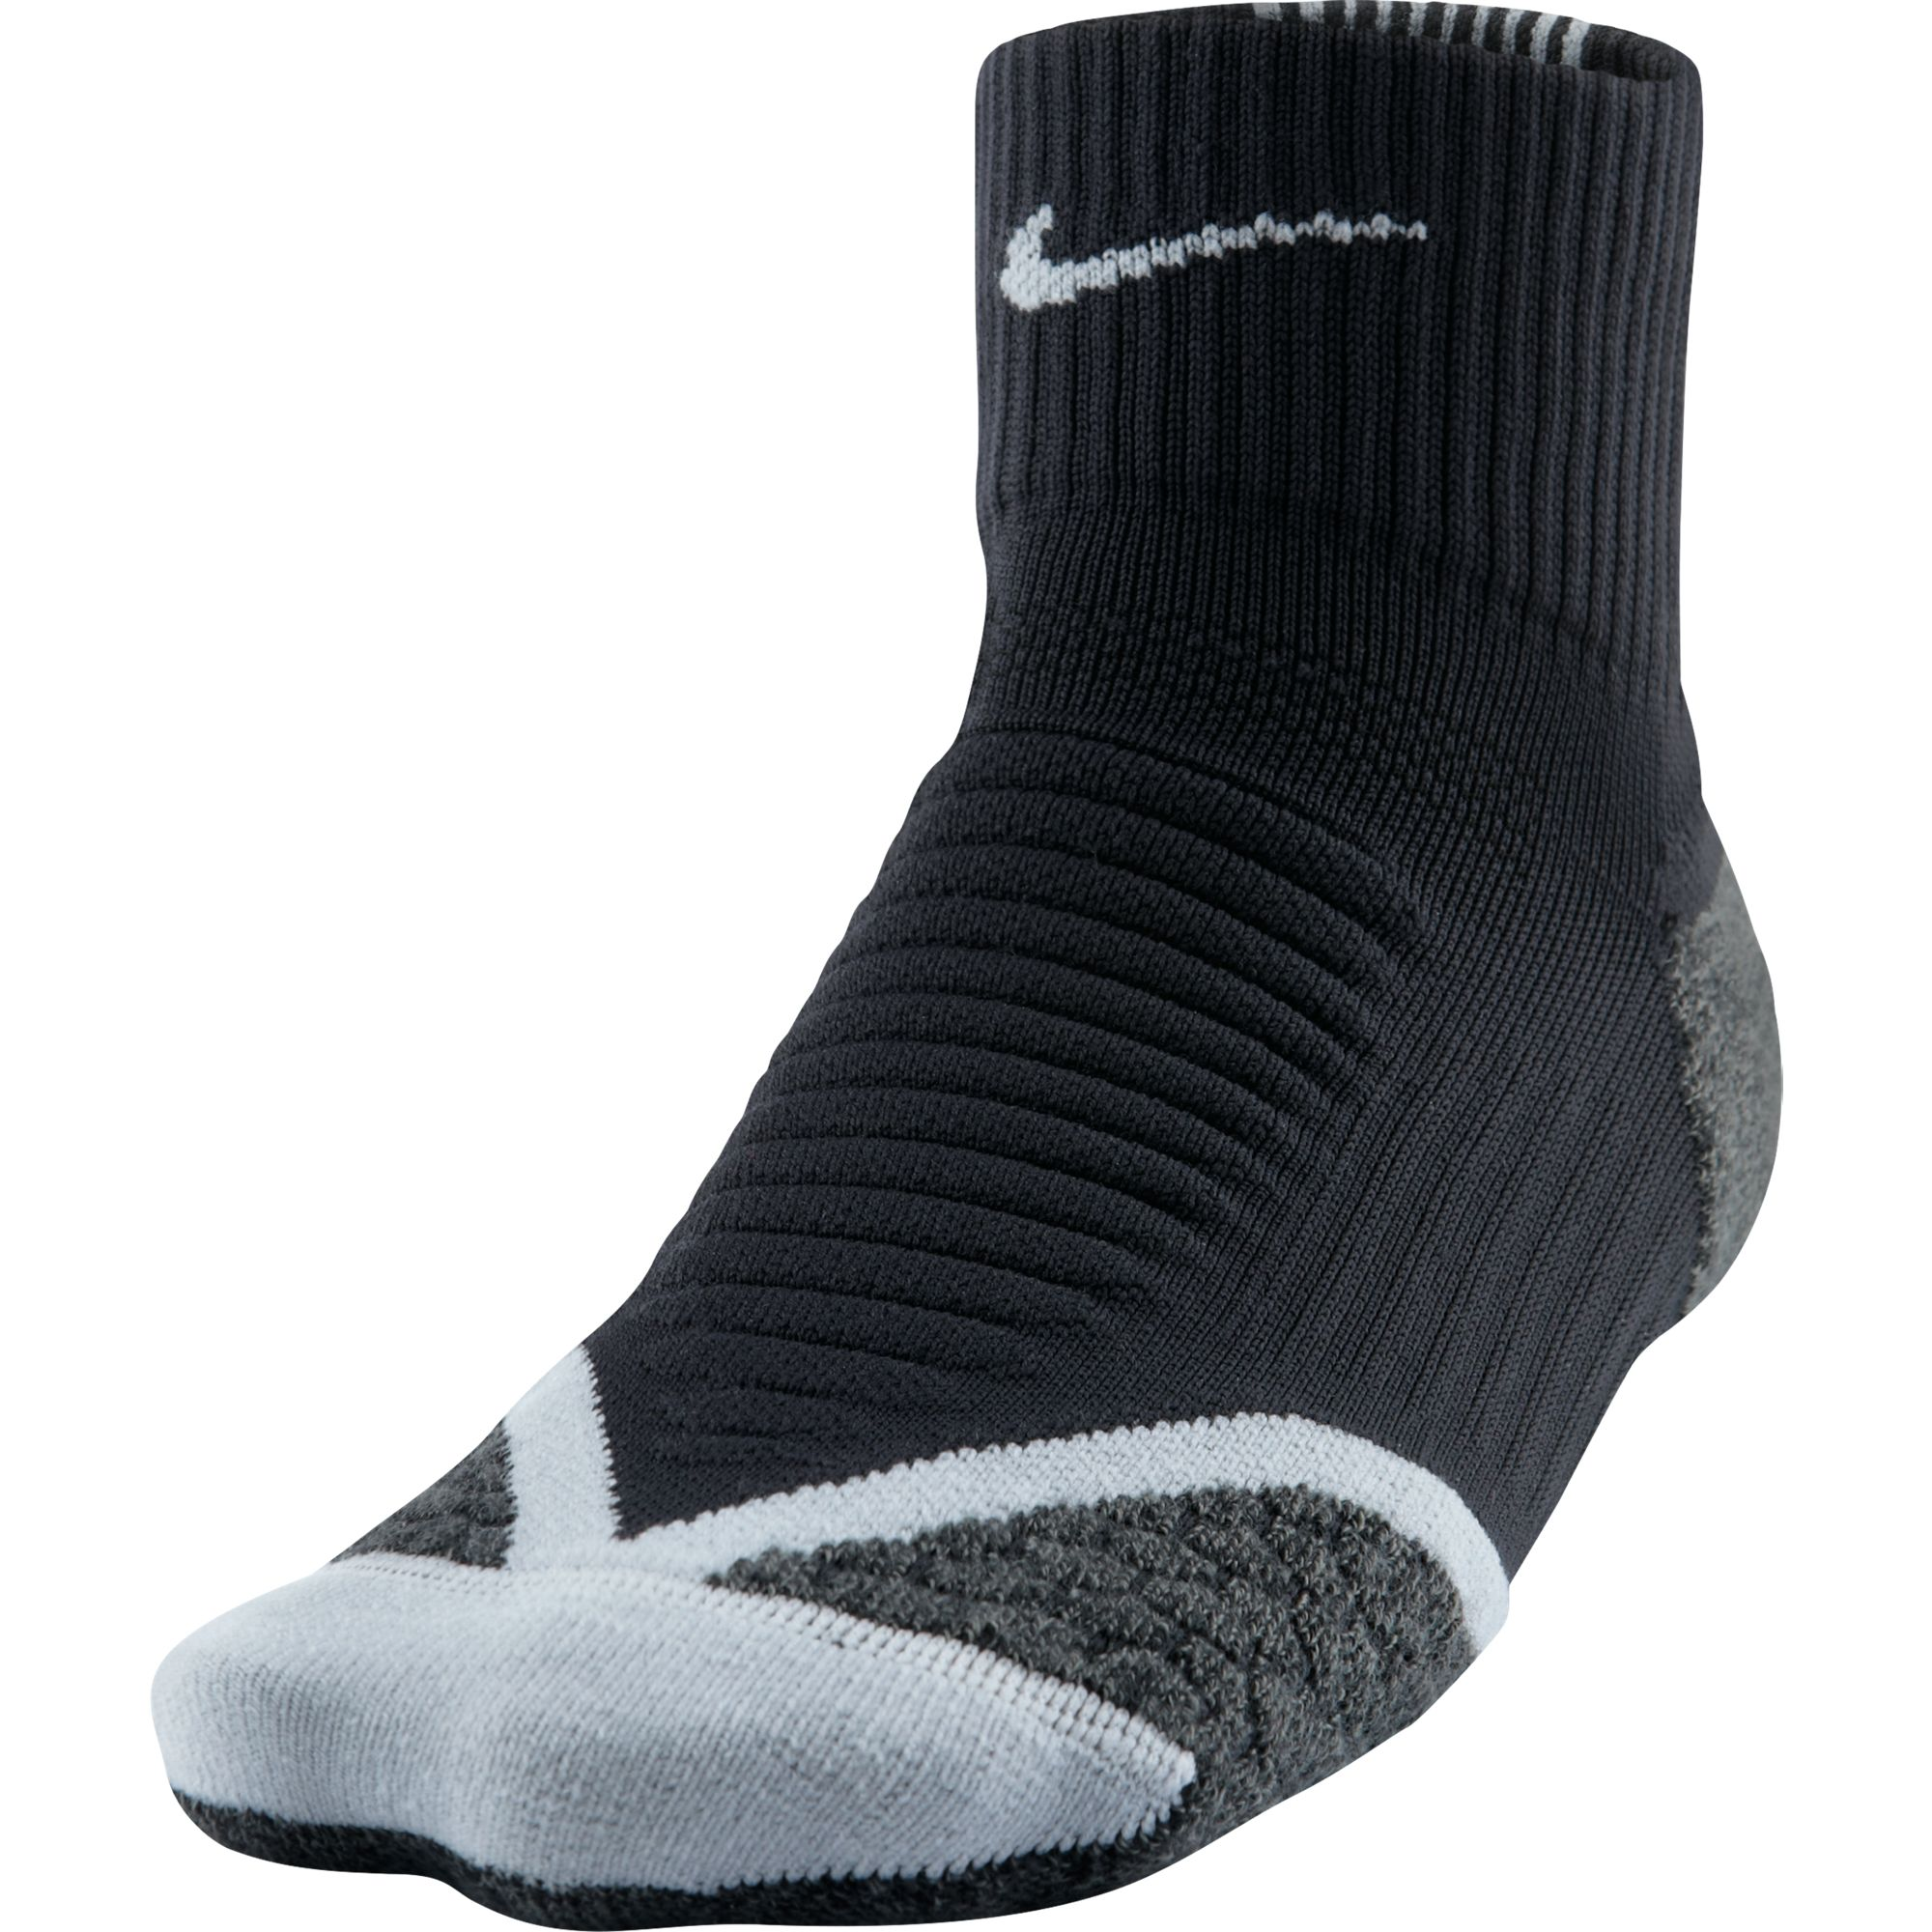 цена на Nike Носки Nike Elite Running Cushion Qtr, 1 пара, размер 43-44,5